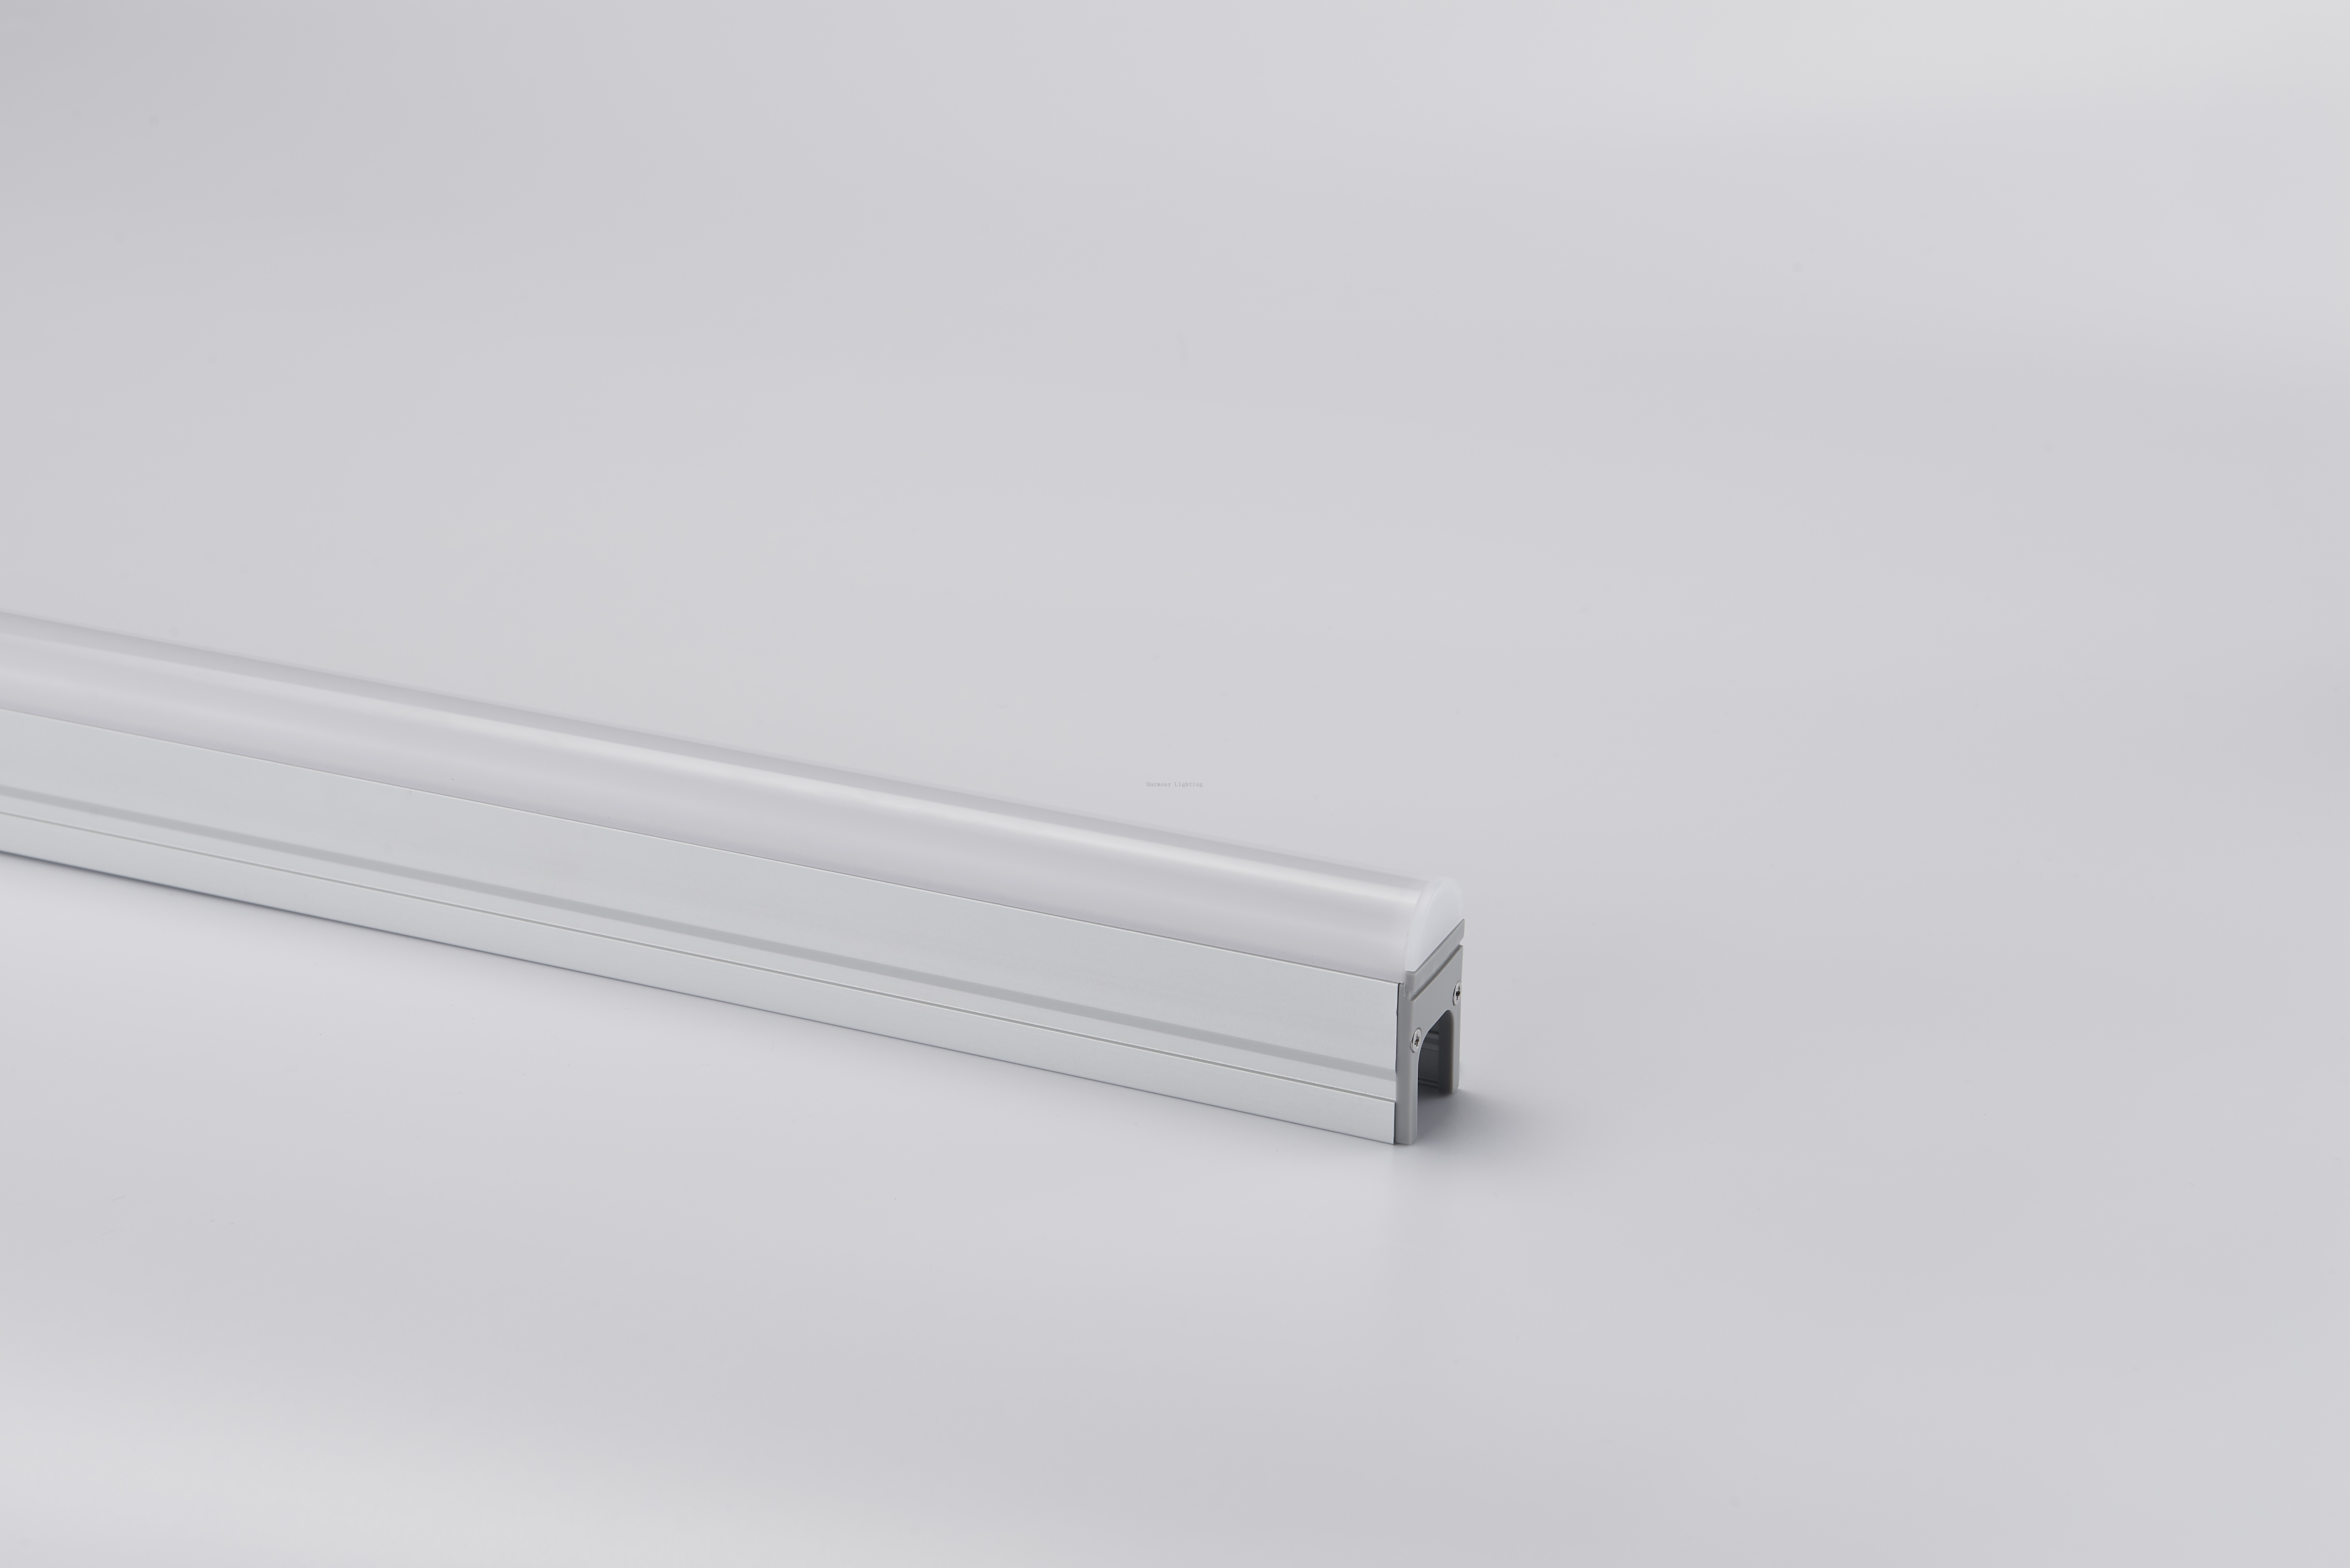 RH-C25 Building Outdoor Wall Profile Linear Lighting Osram 12W LED Bar Light